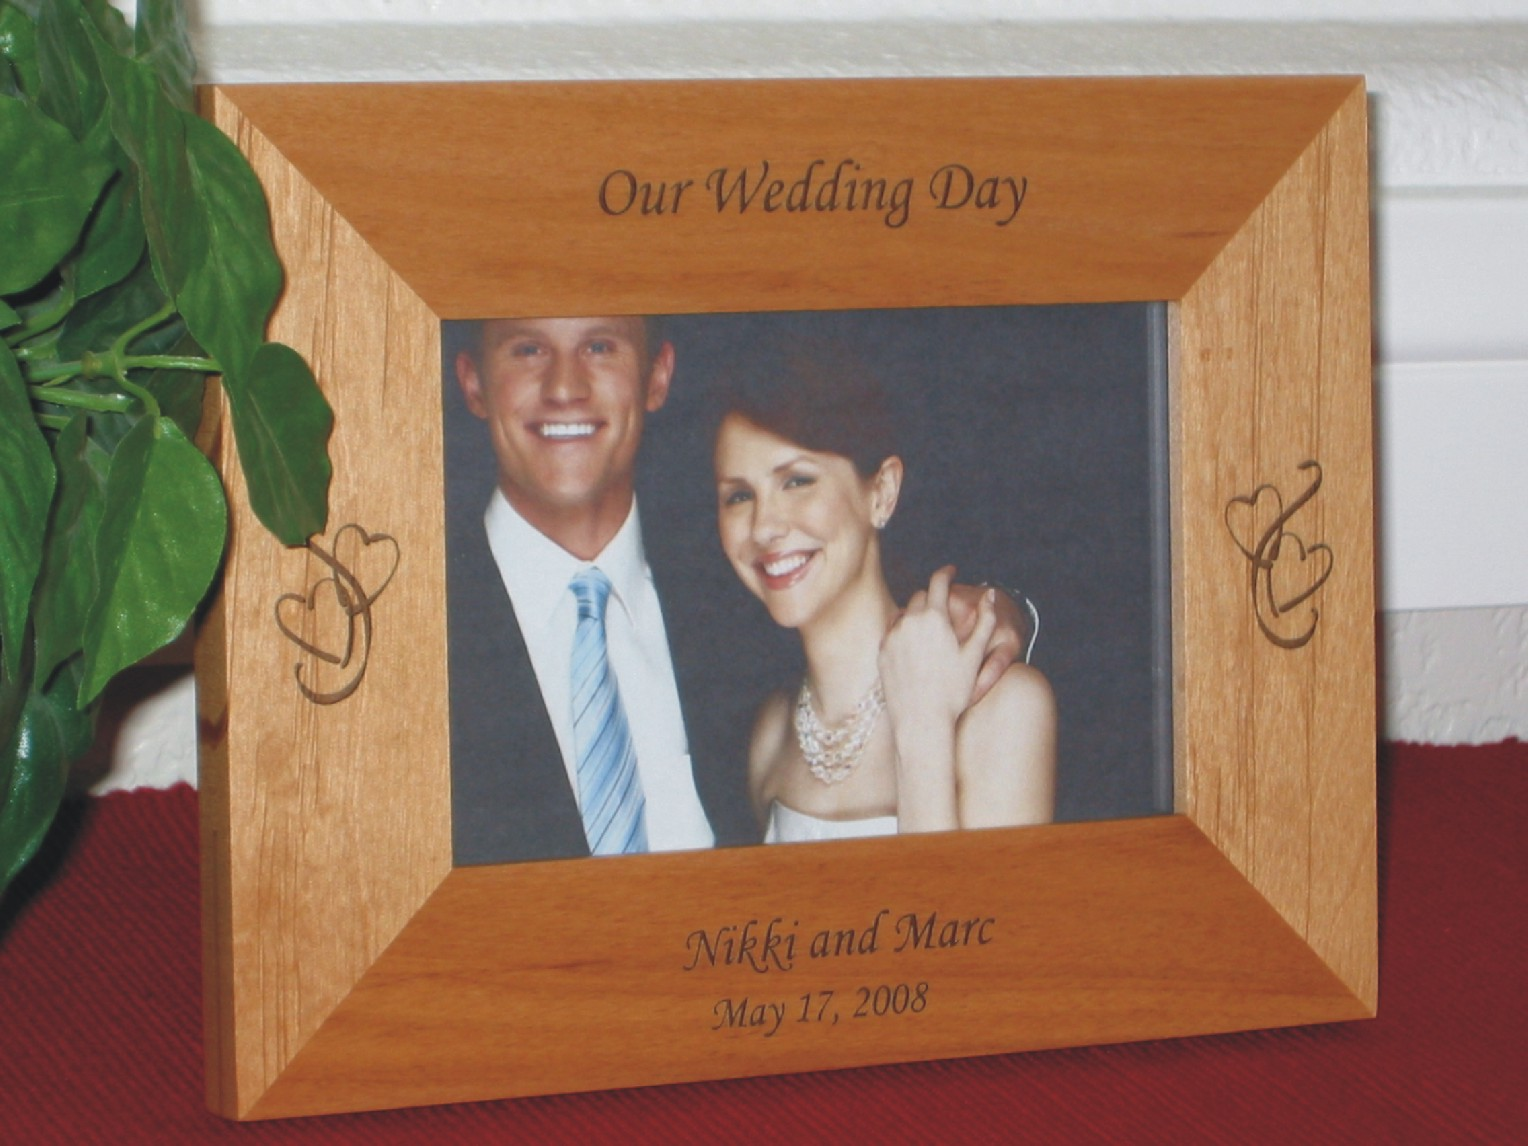 Wedding Picture Frames - Personalized Wedding Picture Frames